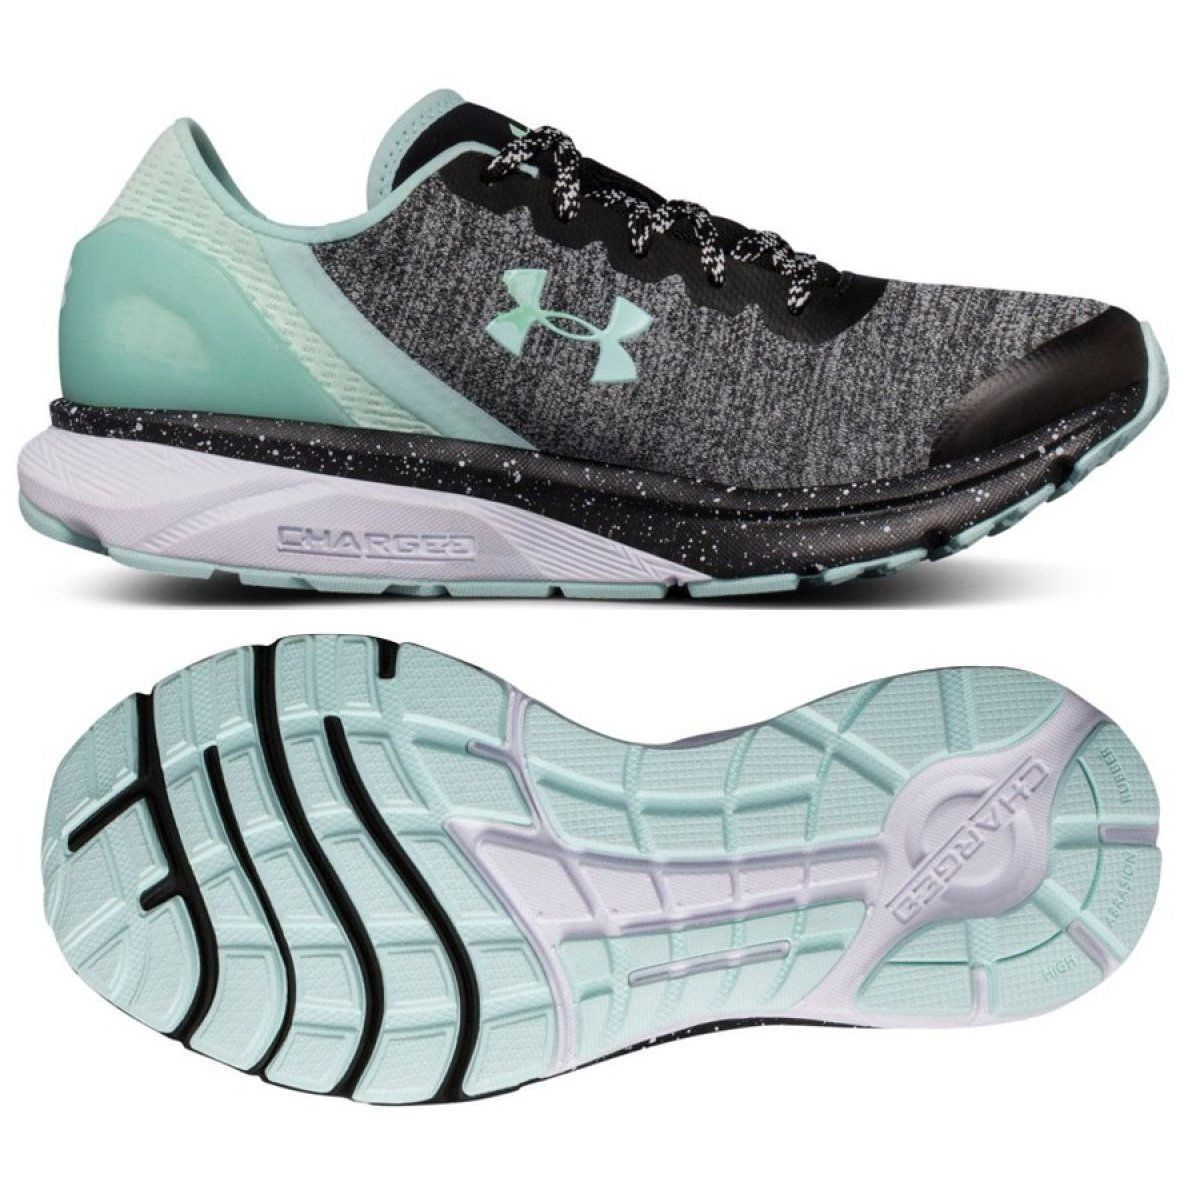 Buty Biegowe Under Armour Charged Escape W 3020005 002 Wielokolorowe Szare Under Armor Under Armour Running Shoes